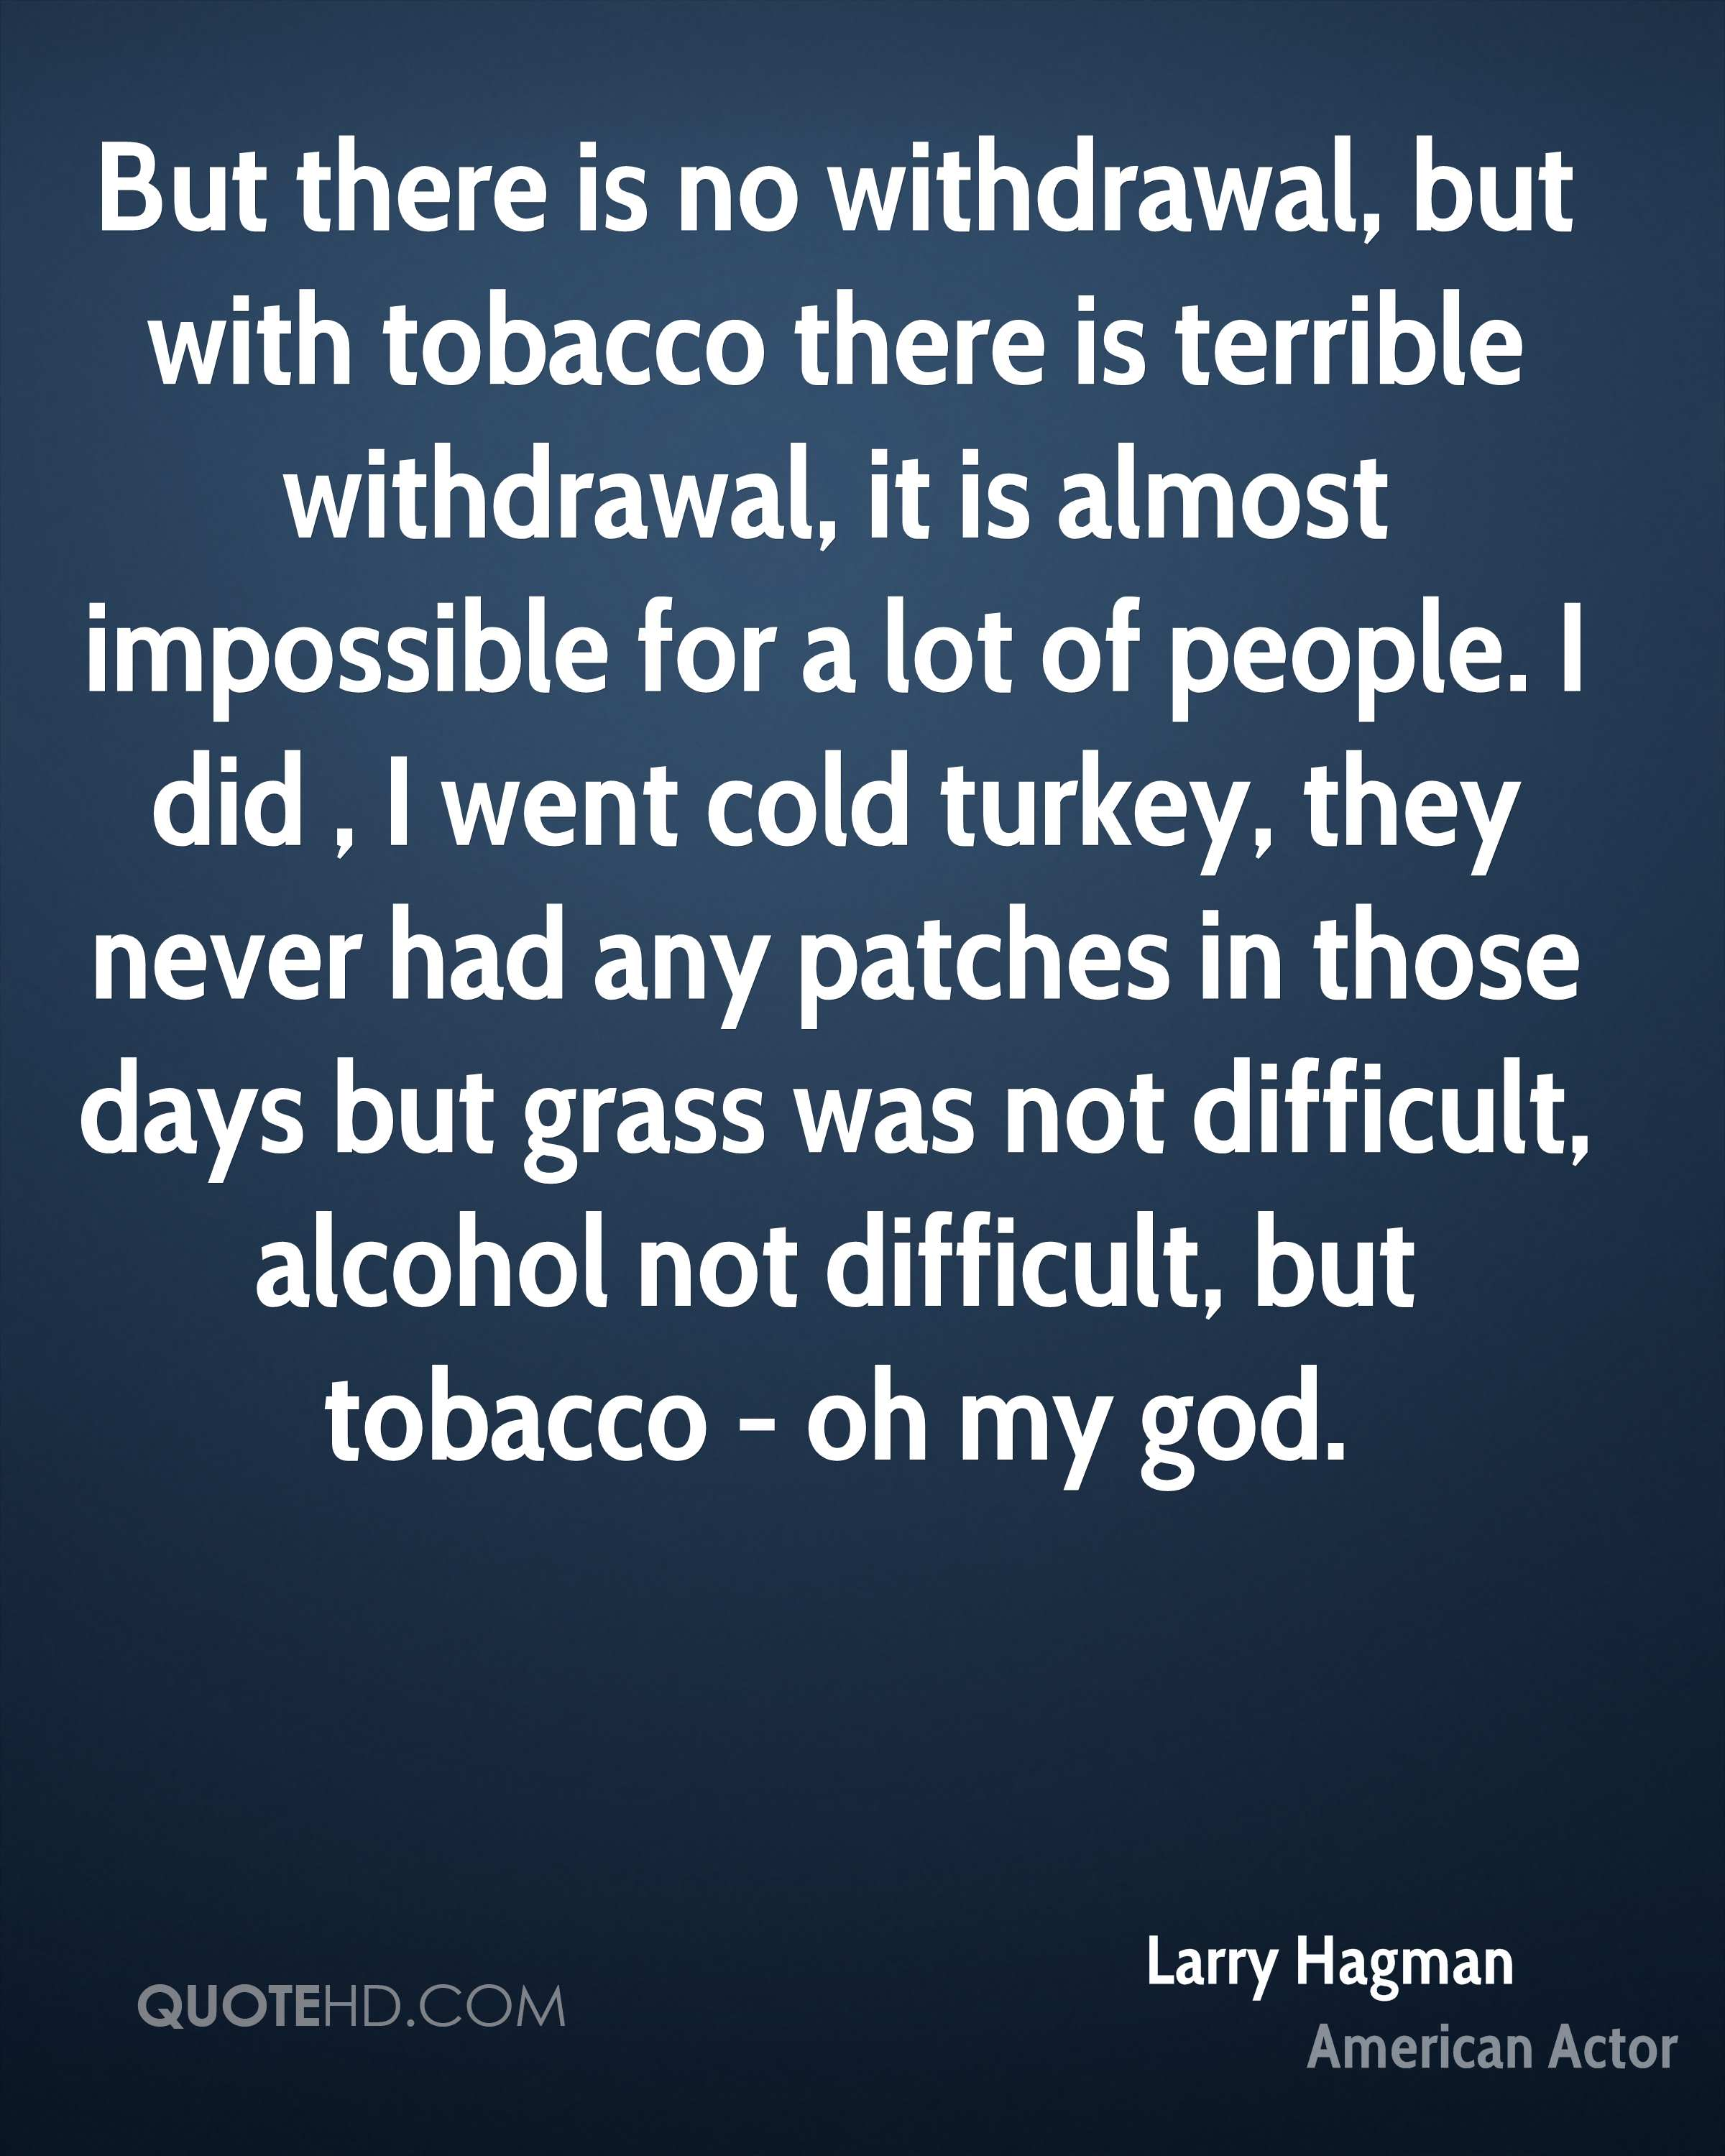 But there is no withdrawal, but with tobacco there is terrible withdrawal, it is almost impossible for a lot of people. I did , I went cold turkey, they never had any patches in those days but grass was not difficult, alcohol not difficult, but tobacco - oh my god.